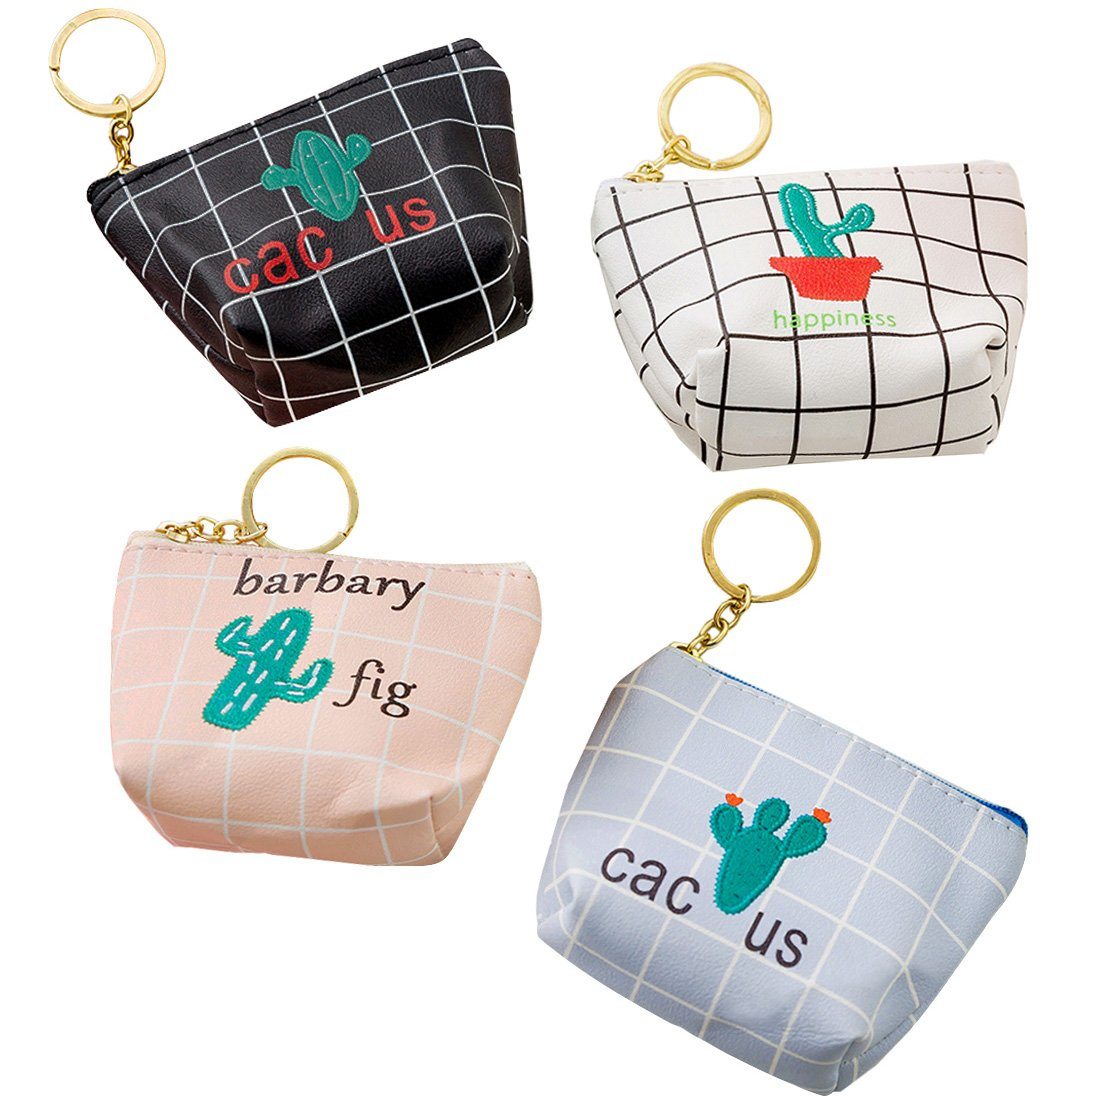 Oyachic 4 pcs Coin Purse Zipper Change Pouch Mini Wallet Gift for Women and Girls